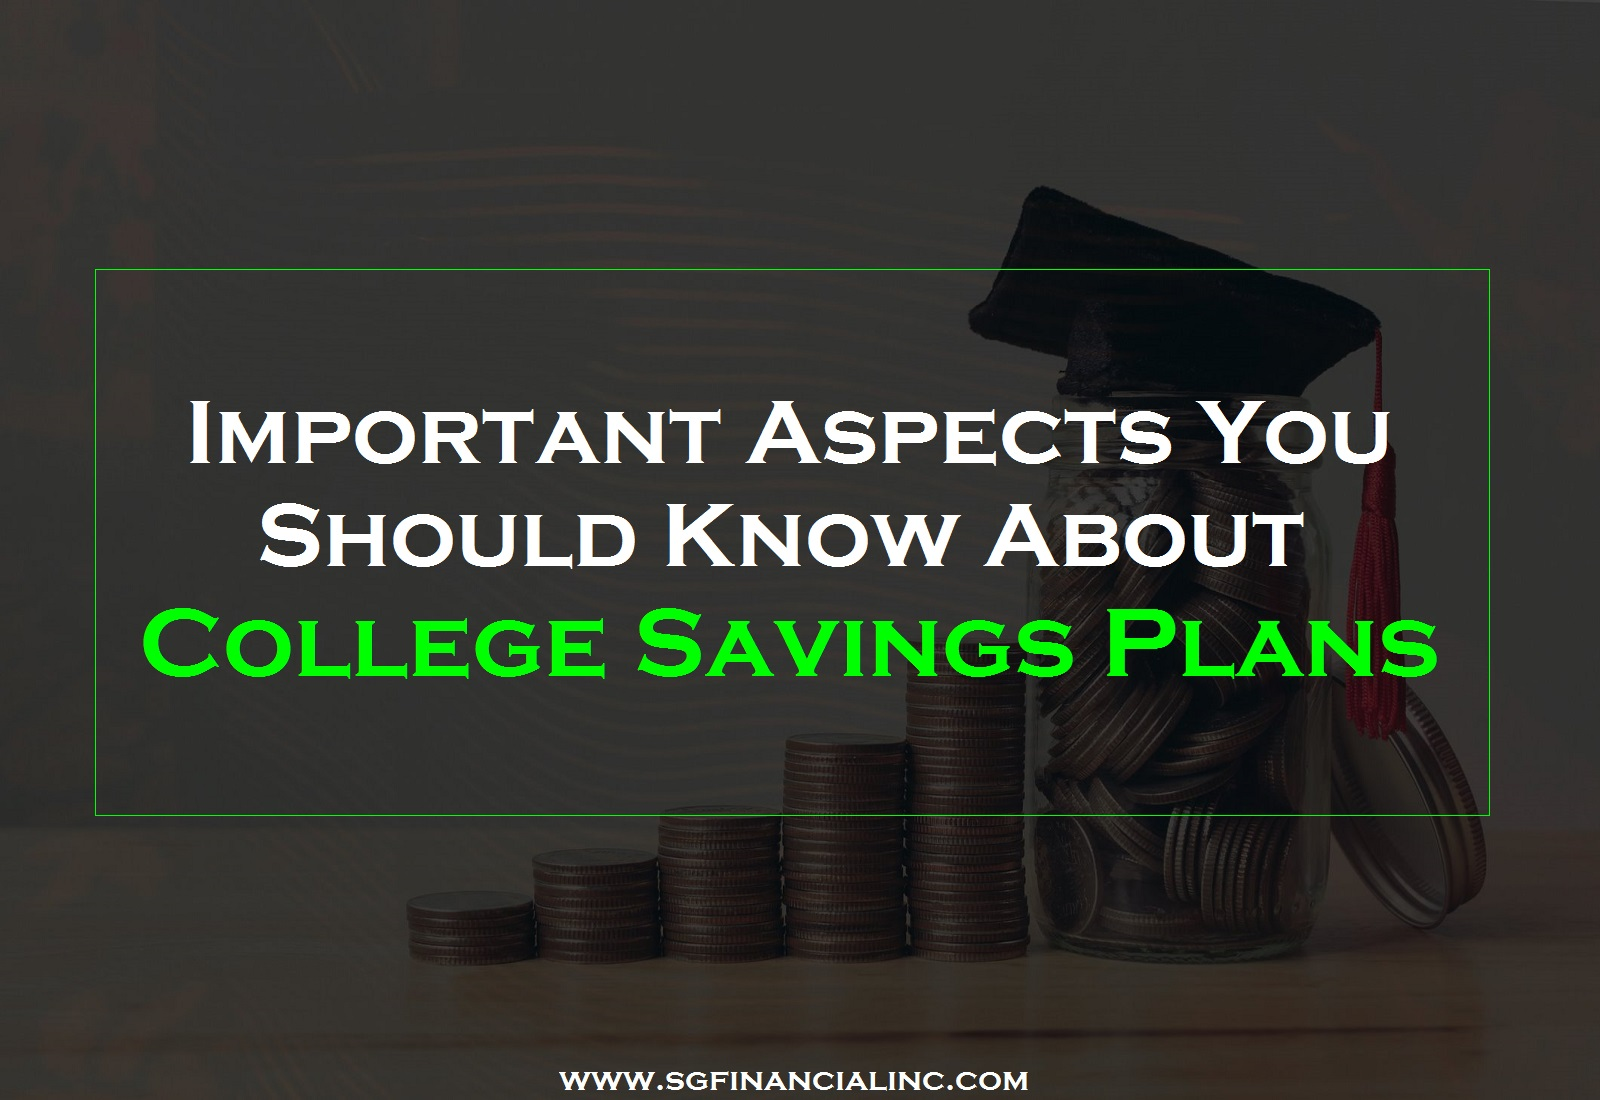 Important Aspects You Should Know About College Savings Plans